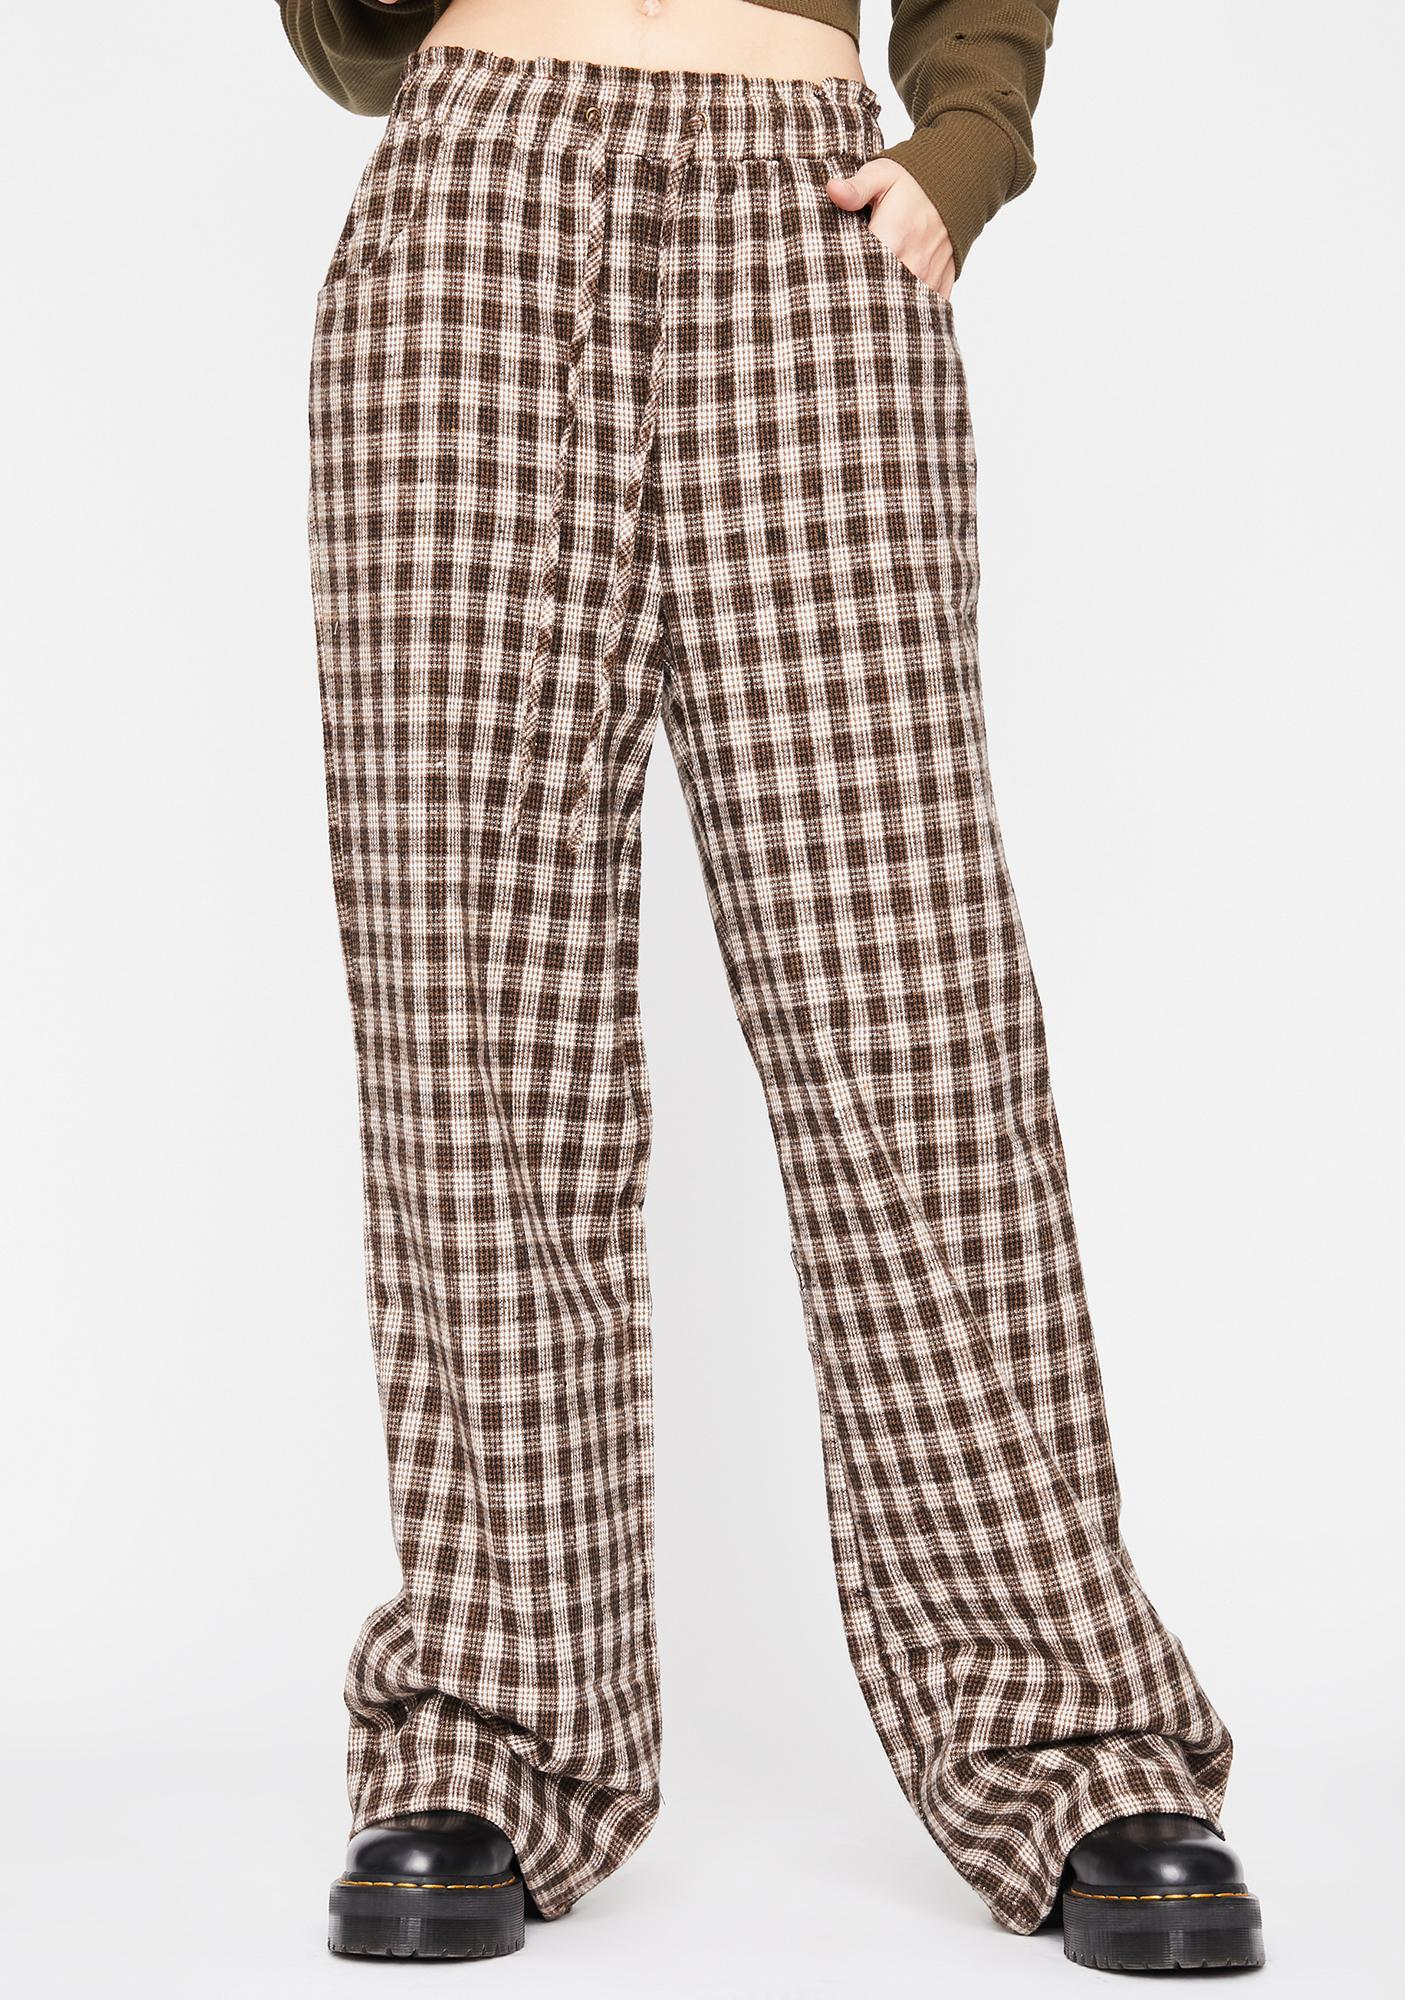 That's On What Plaid Pants